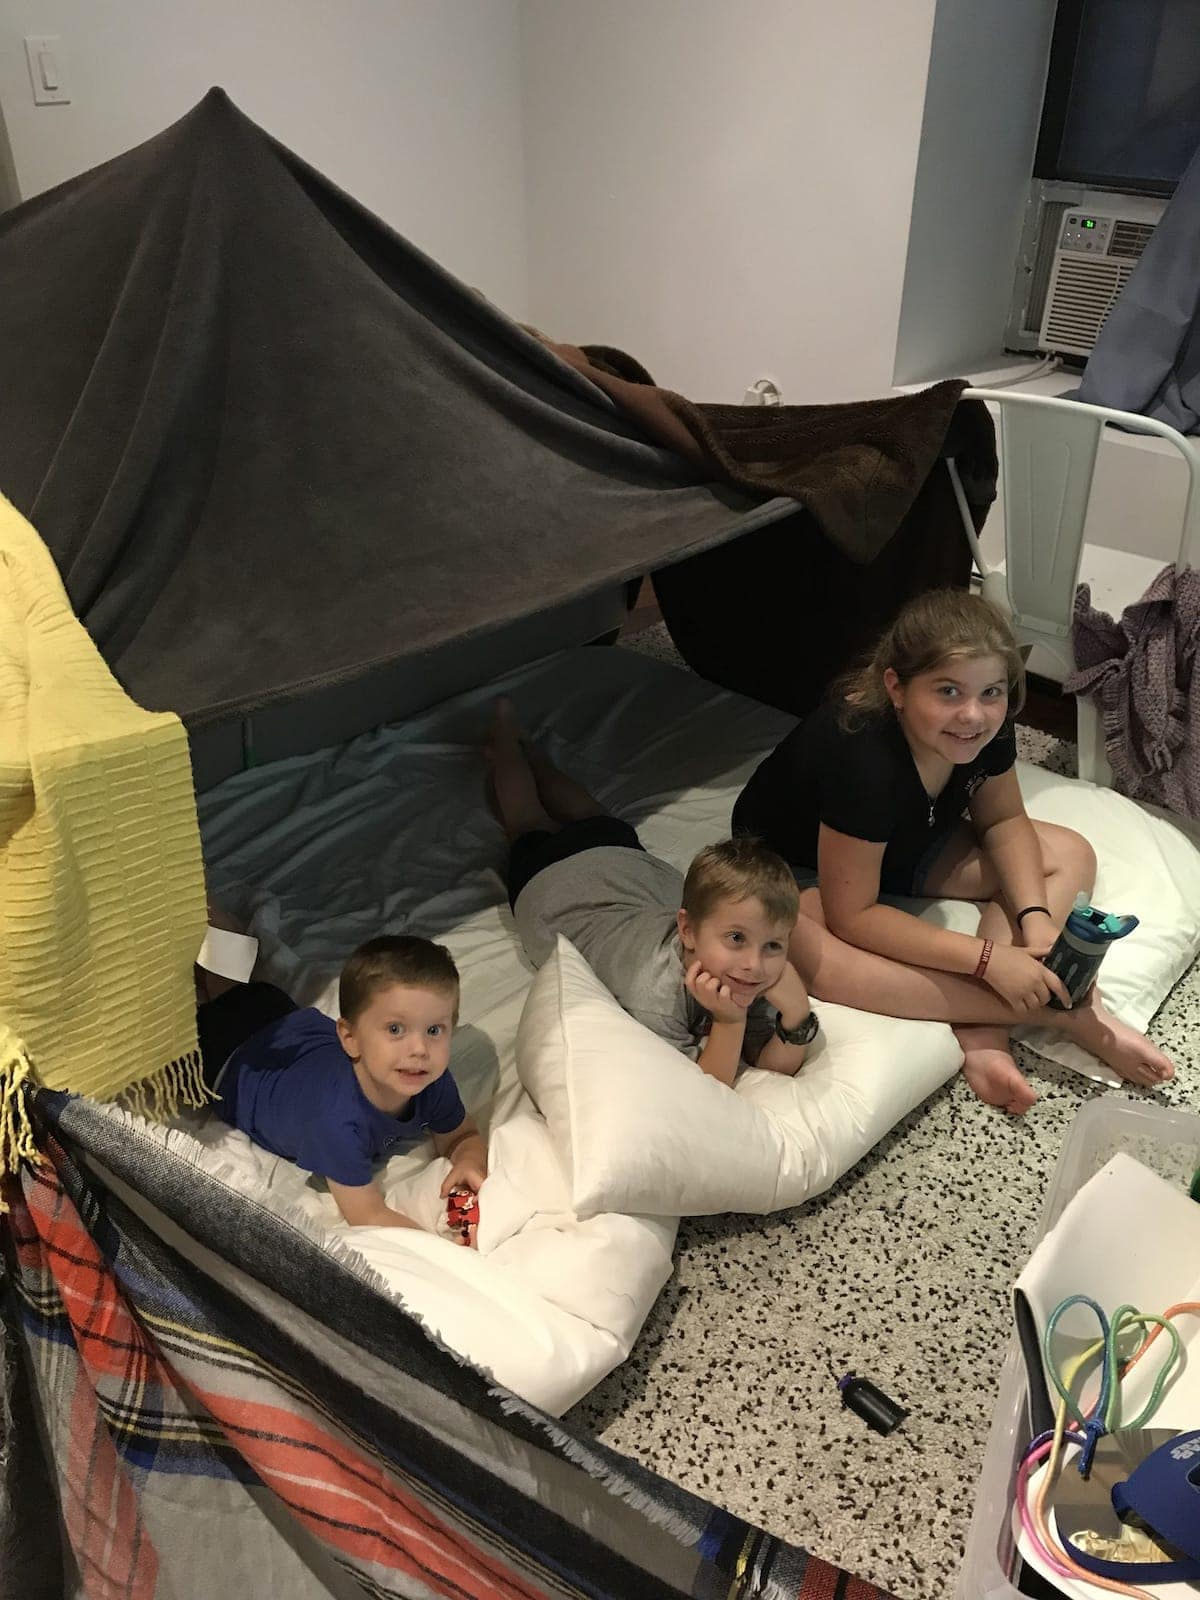 The kids under their blanket fort